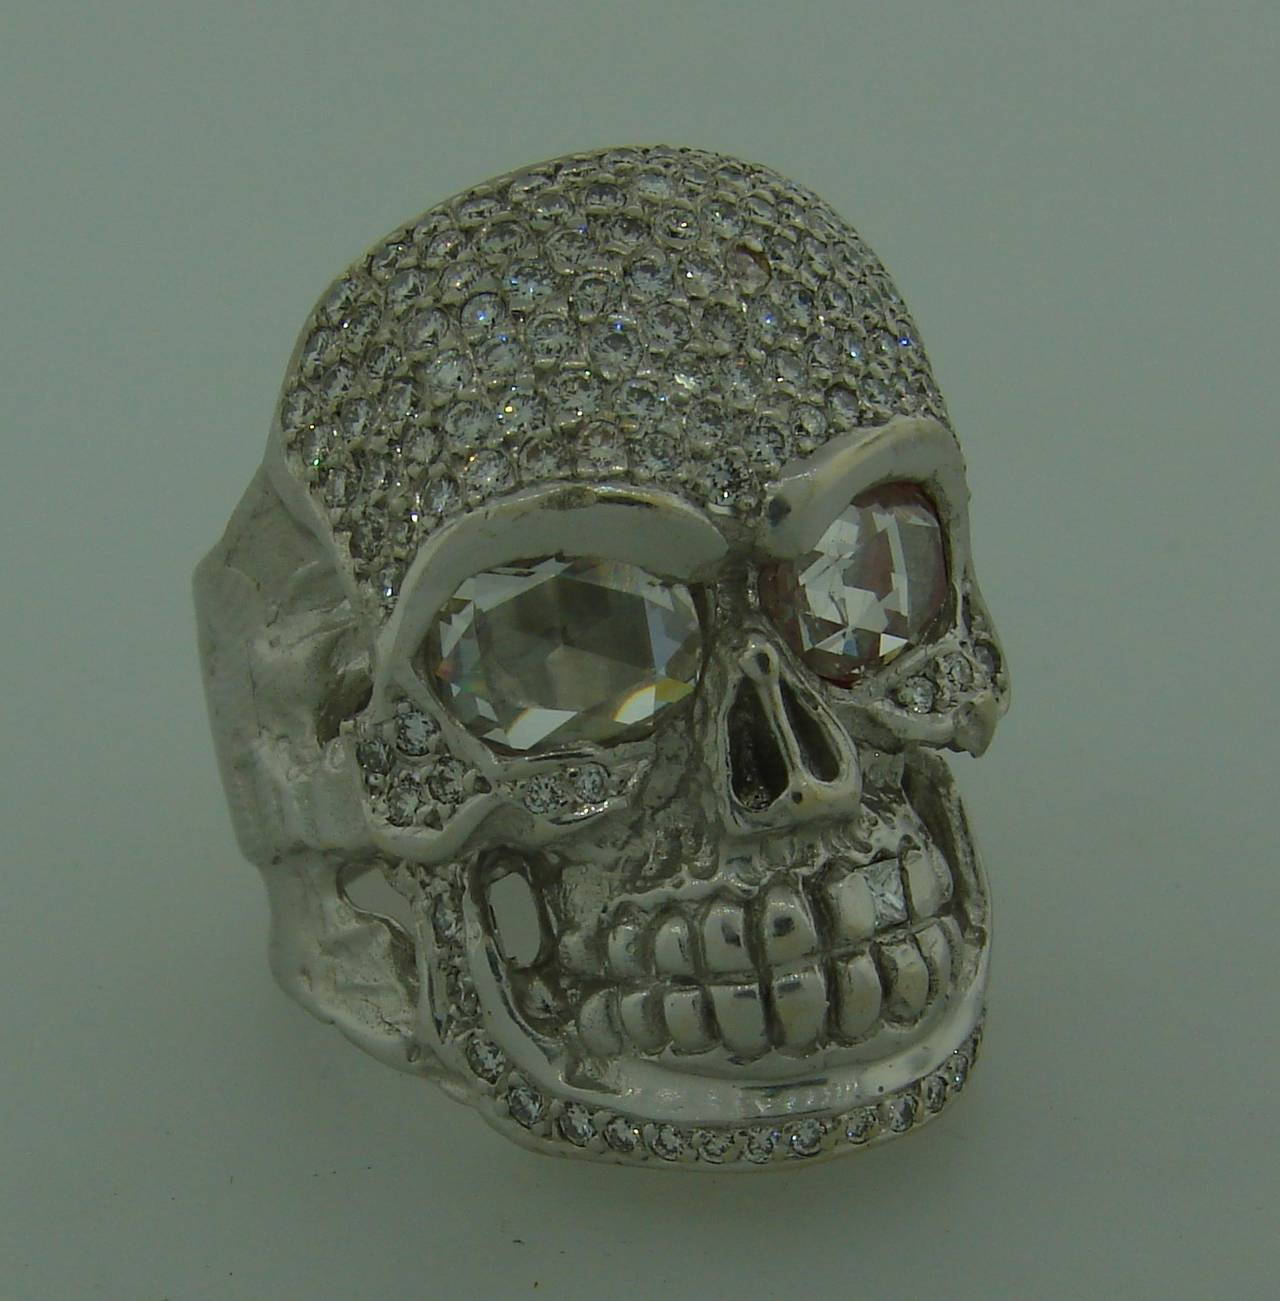 Outstanding diamond skull ring created by a renown Hollywood designer Loree Rodkin. Features two rose cut diamonds as the skull's eyes, round brilliant cut diamonds all over the face and one princess cut diamond as its tooth.  The rose cut diamonds